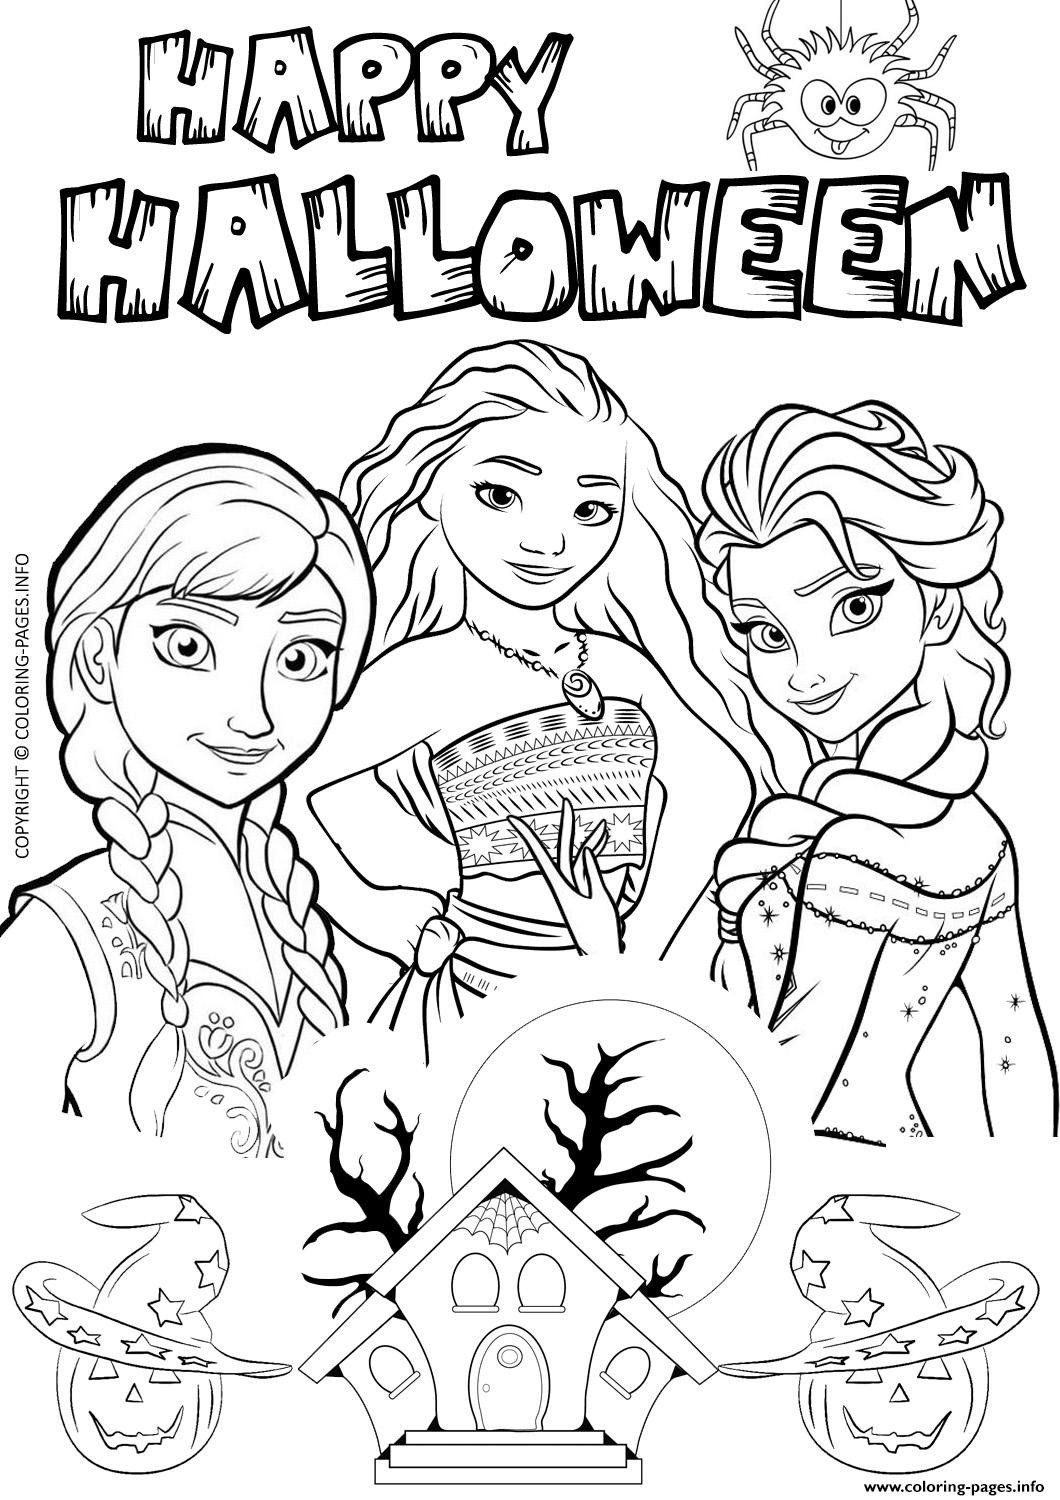 Coloring Pages Disney Hard Coloring Pages Disney Princess Halloween Coloring Pages Superhero Coloring Pages Halloween Coloring Sheets Disney Coloring Pages